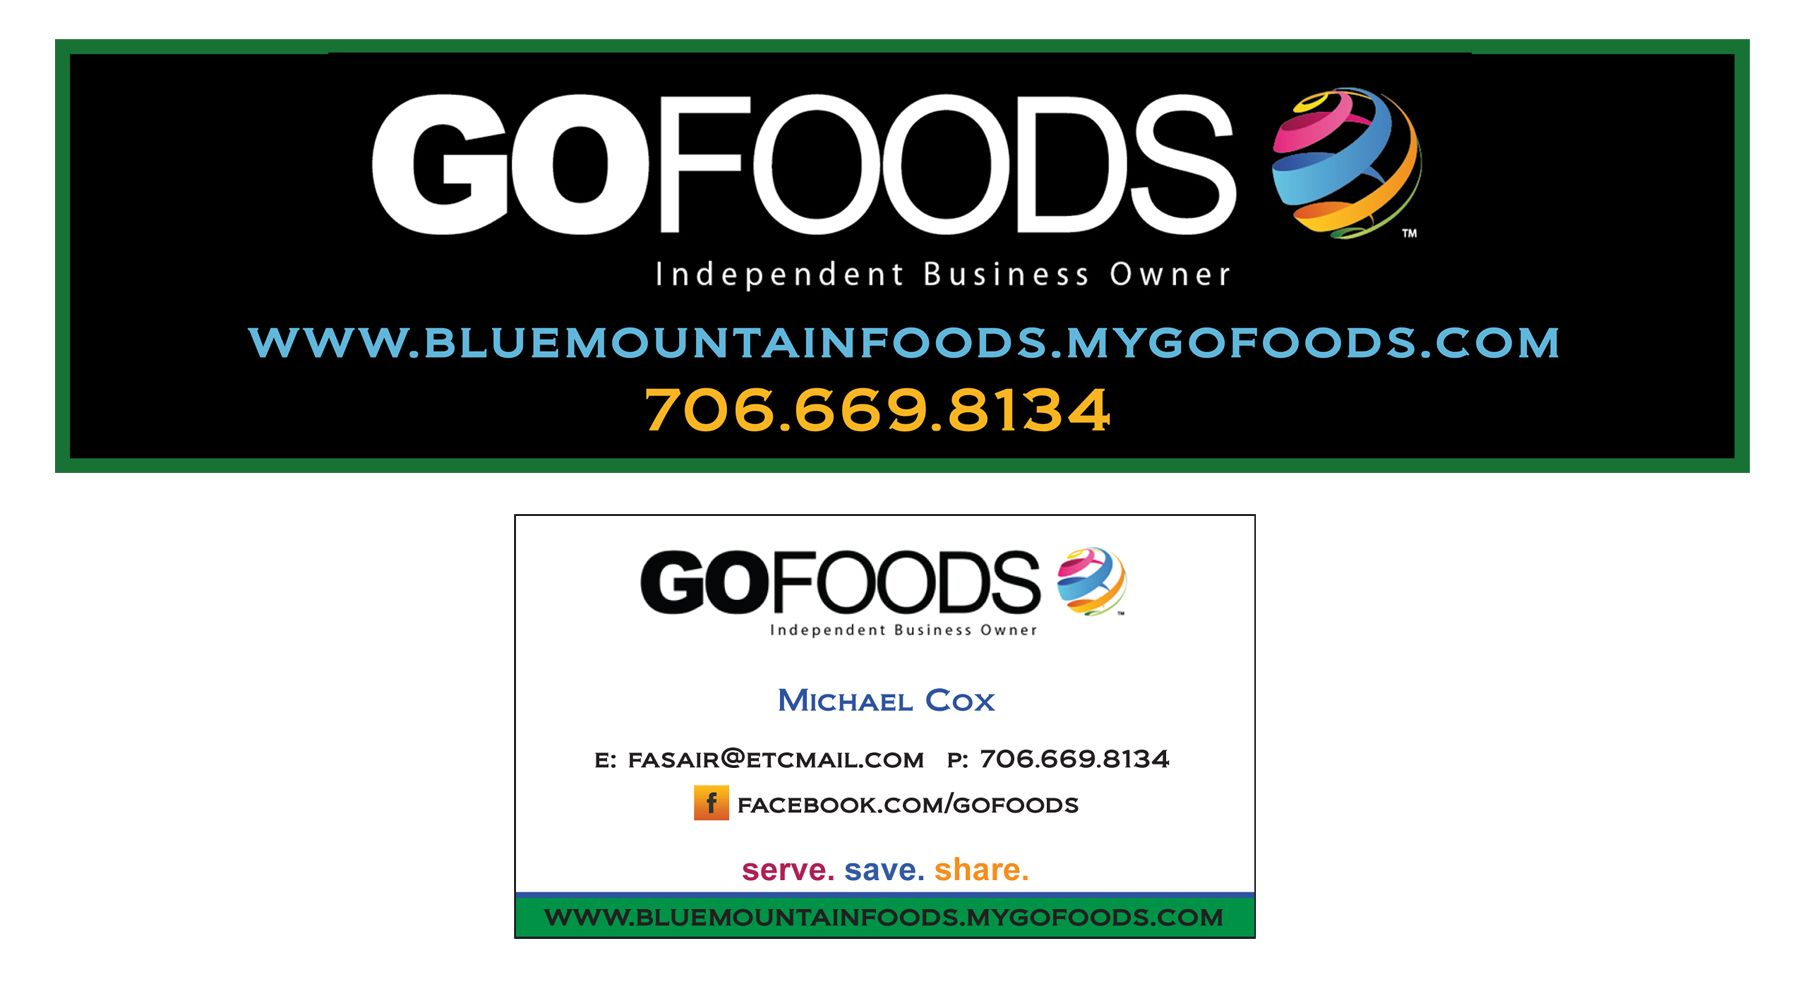 Business Card And Bumper Sticker Layout Design For Gofoods Sales Rep Bumper Stickers Business Card Design Independent Business Owner [ 991 x 1800 Pixel ]